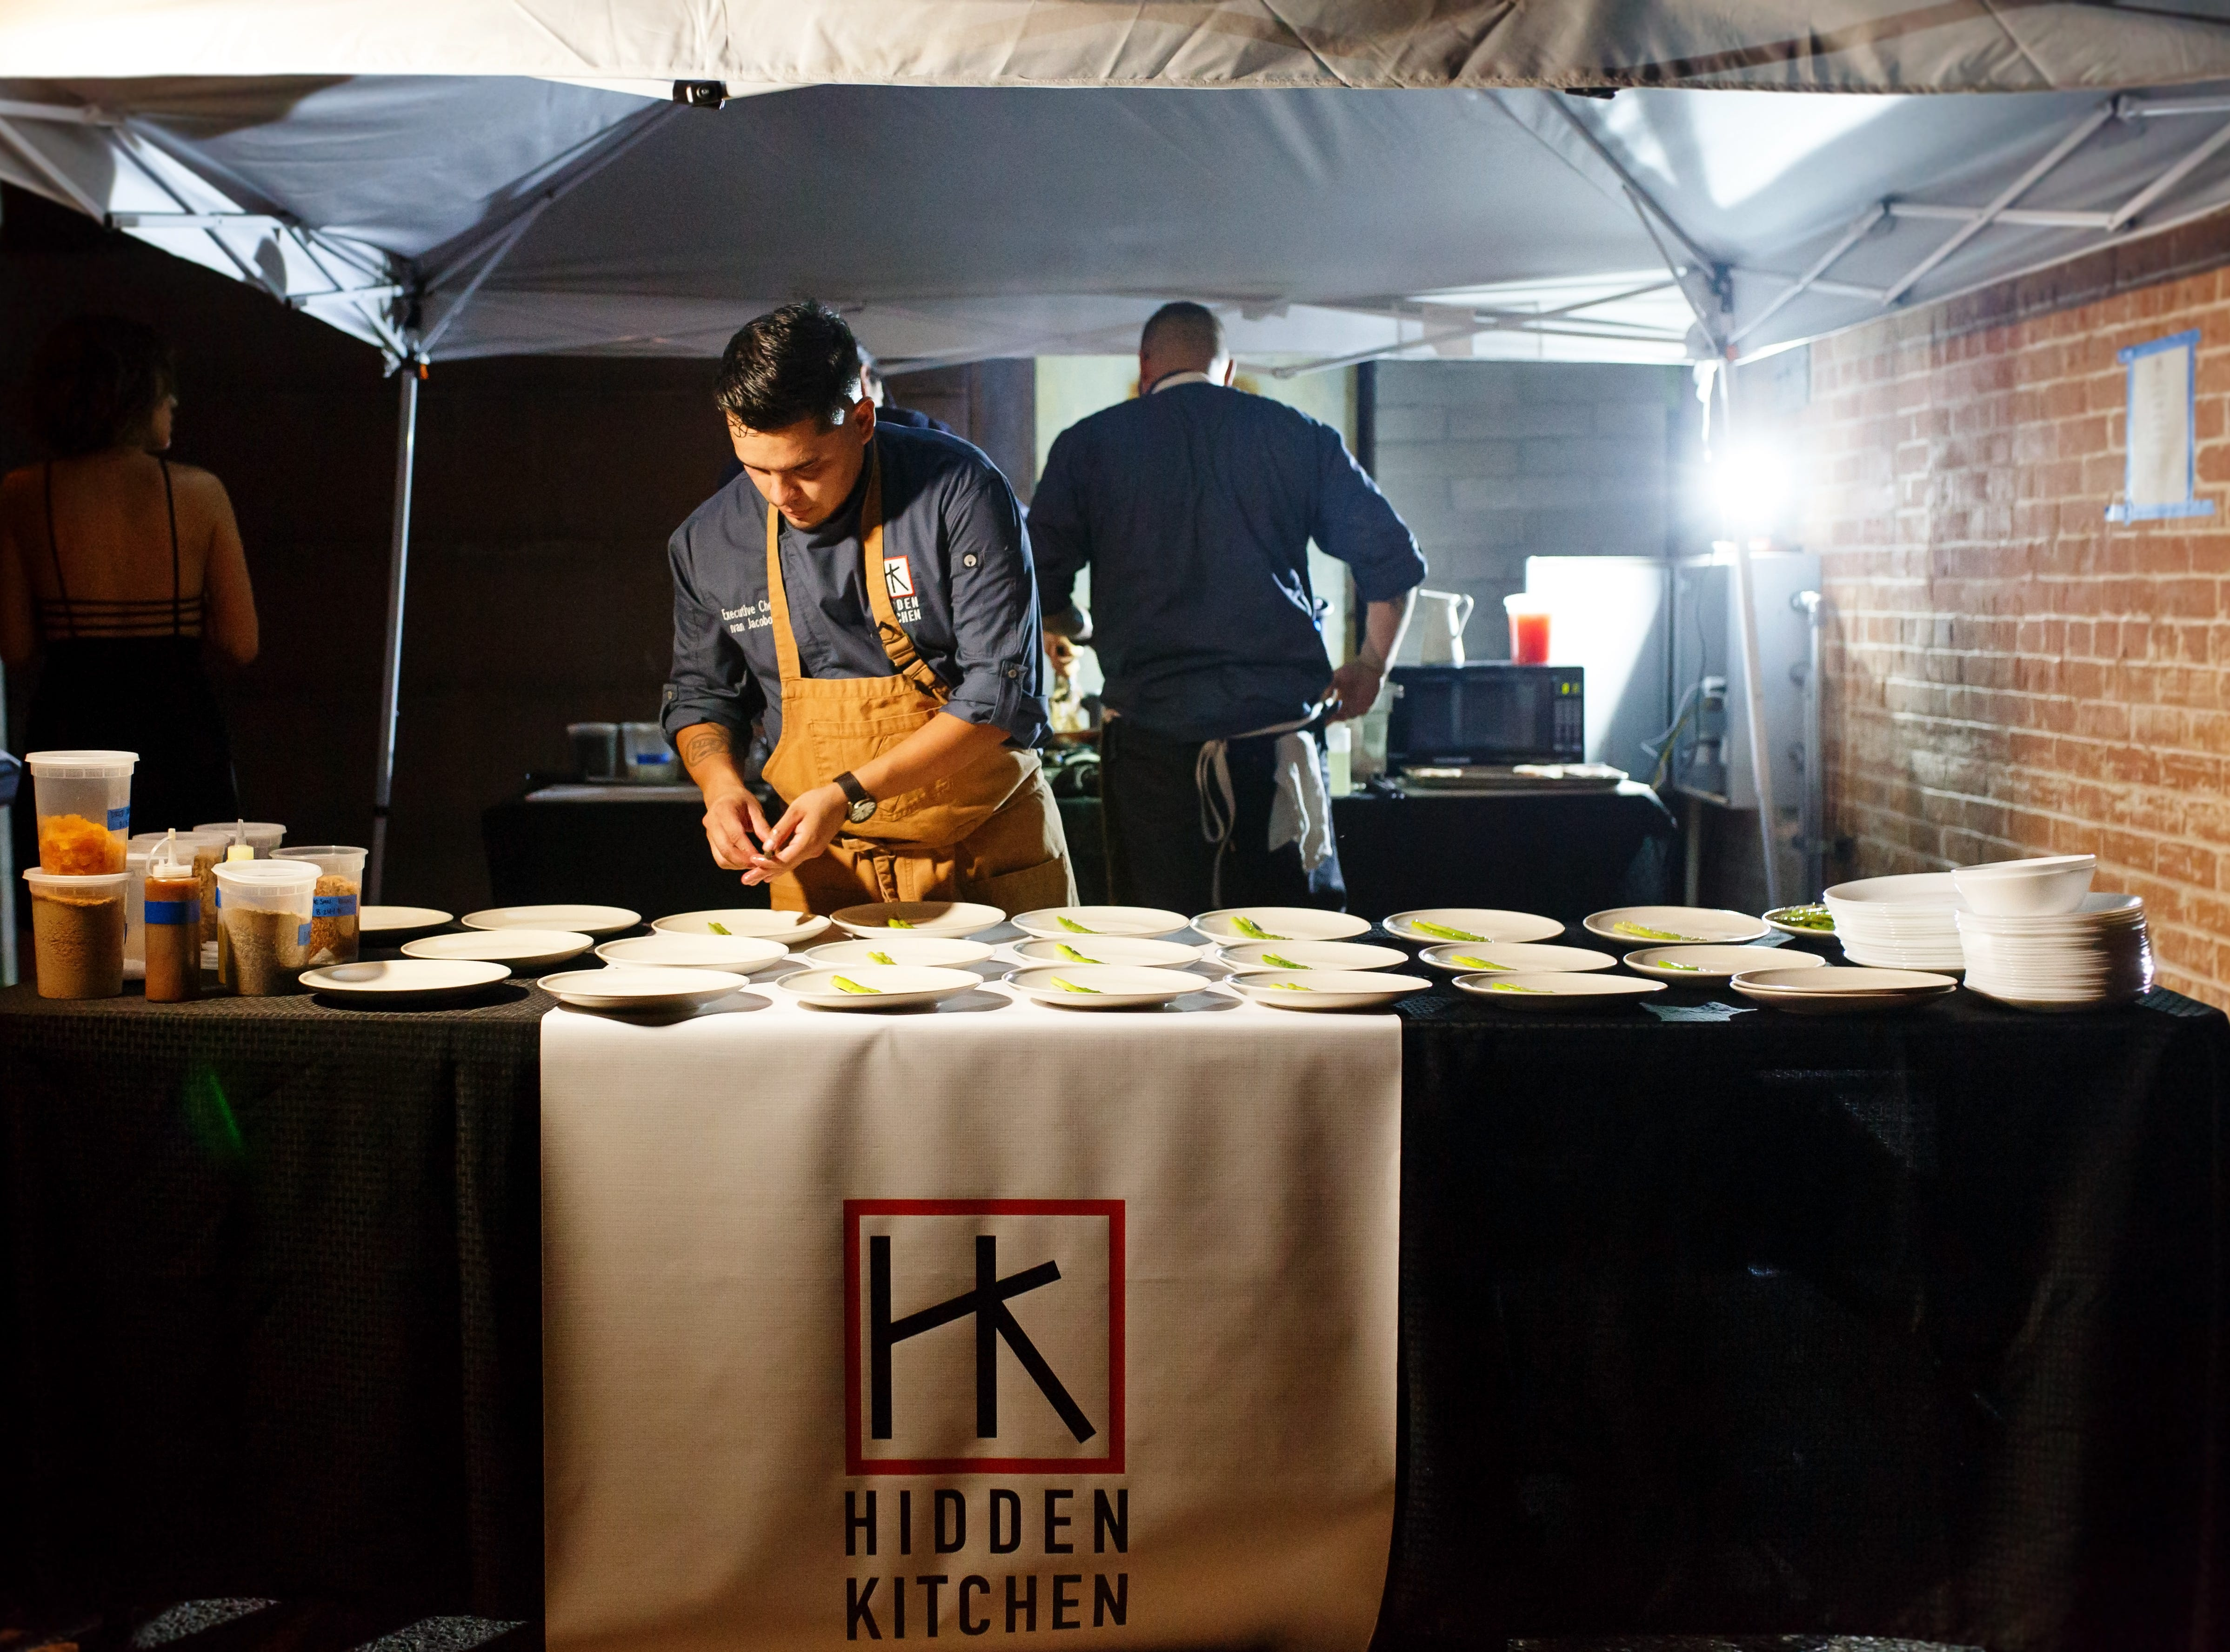 On Tuesday, Feb. 19, 2019, 26-year-old chef Ivan Jacobo will open Hidden Kitchen restaurant at Heritage Square in downtown Phoenix.